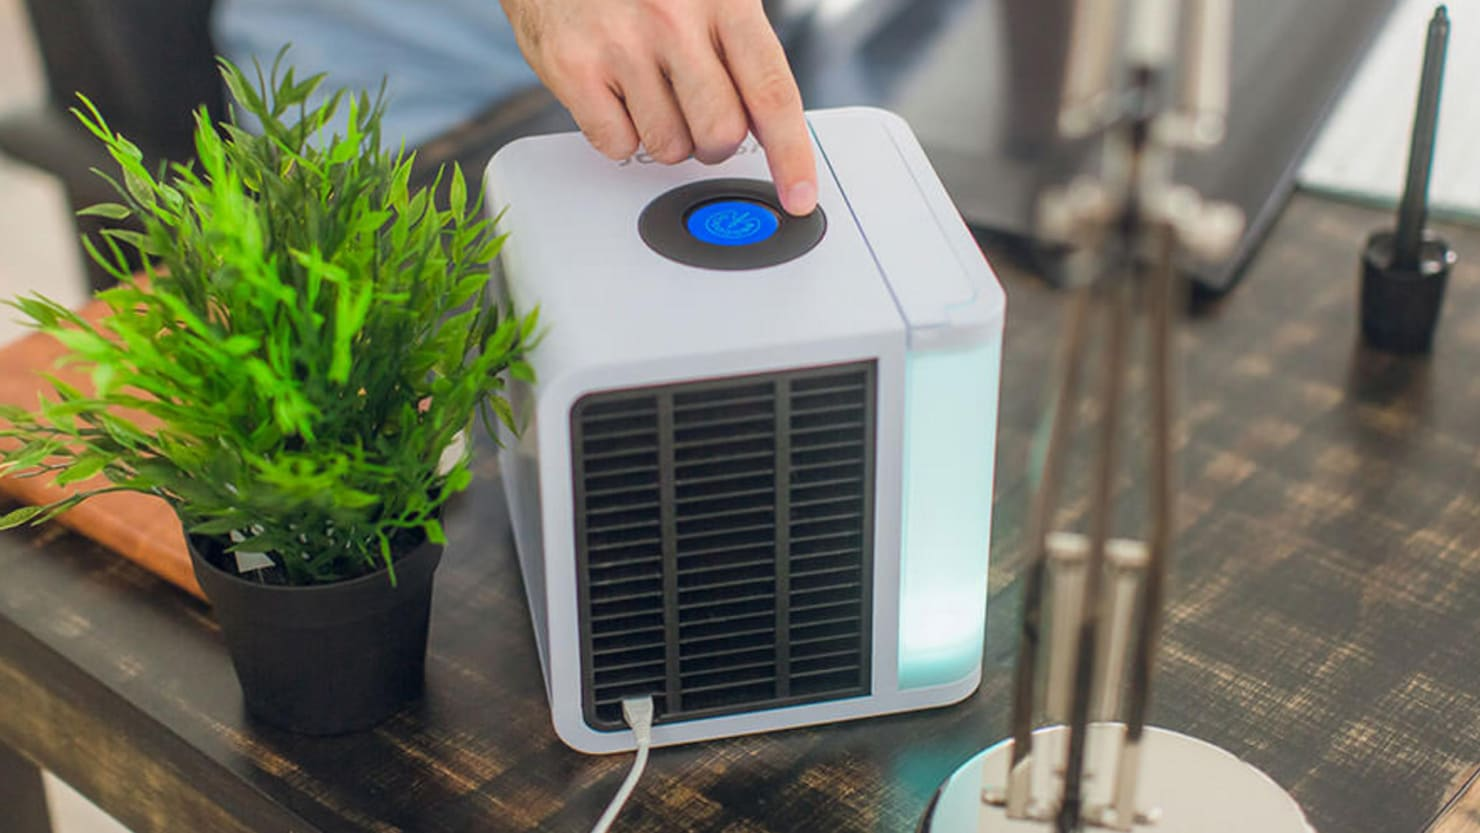 Prepare for Summer With This Portable Air Conditioner